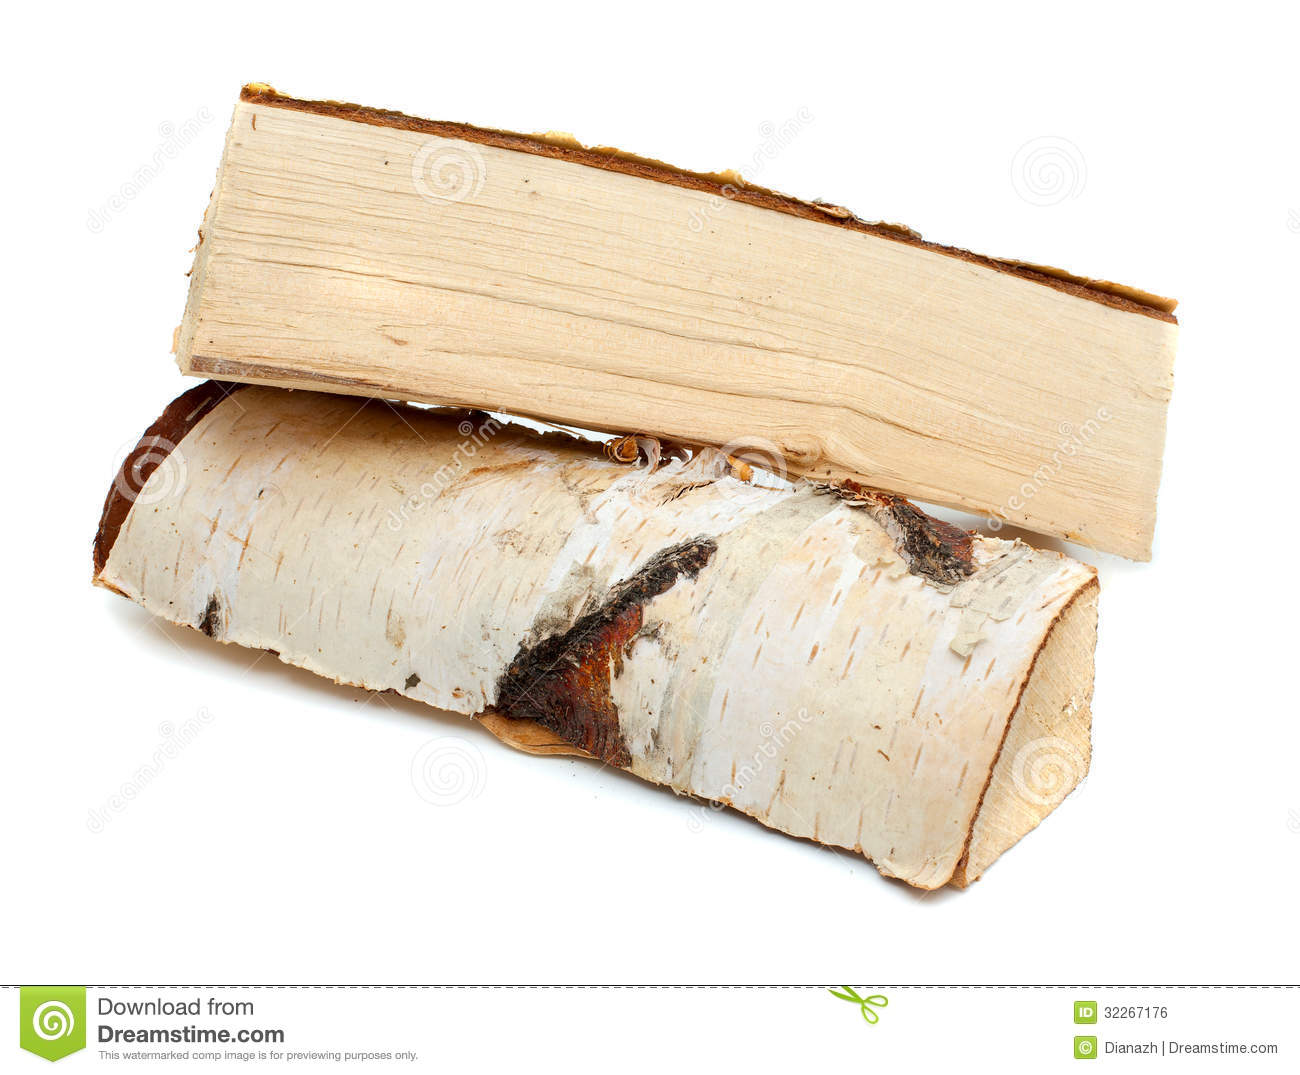 Birch Wood Fireplace Logs Cut Logs Of Fire Wood Royalty Free Stock Image Image